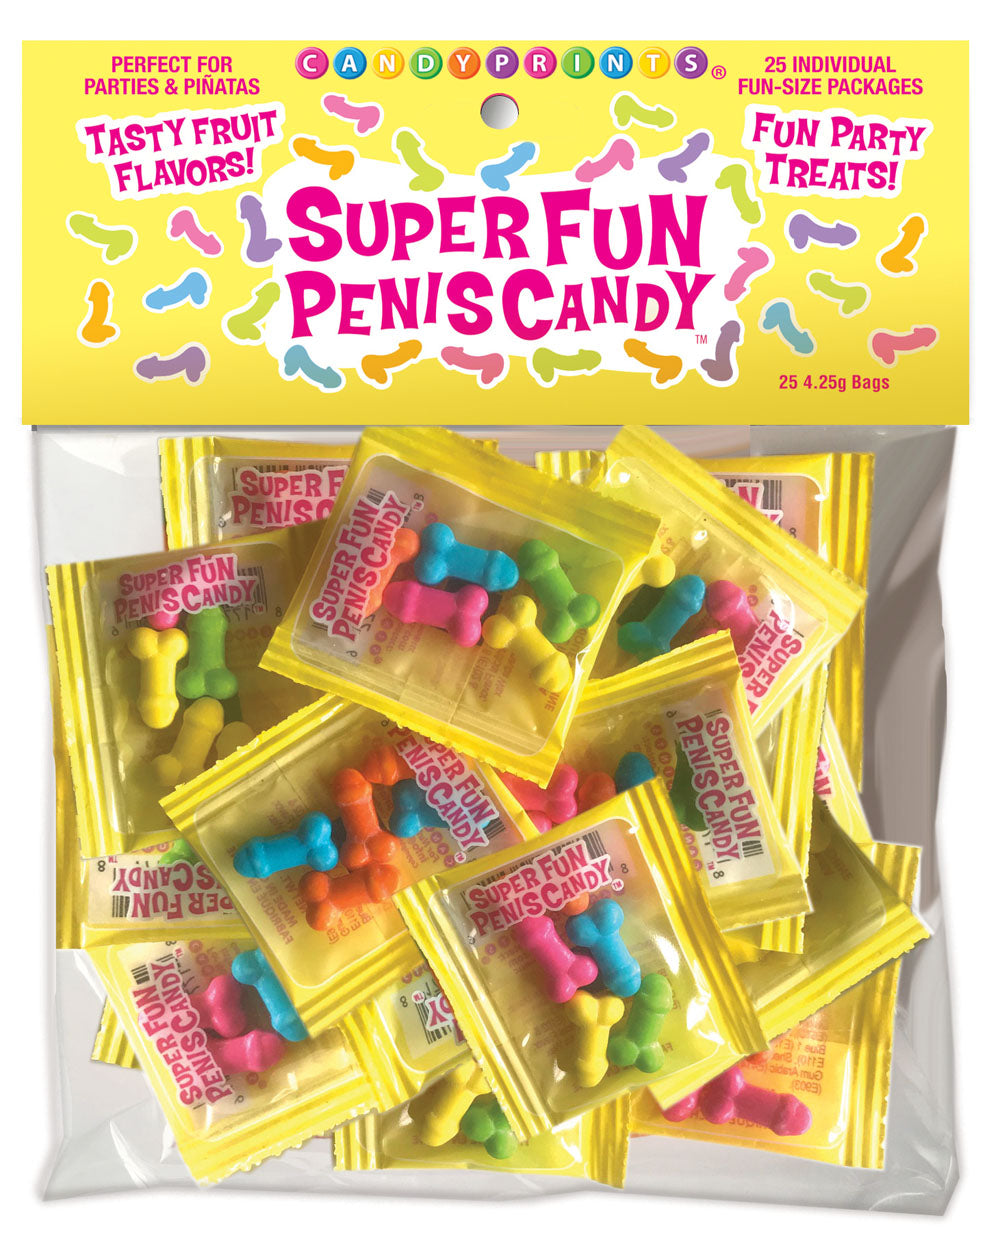 Super Fun Penis Candy 25 Individual Fun-Size Packages -Party Supplies